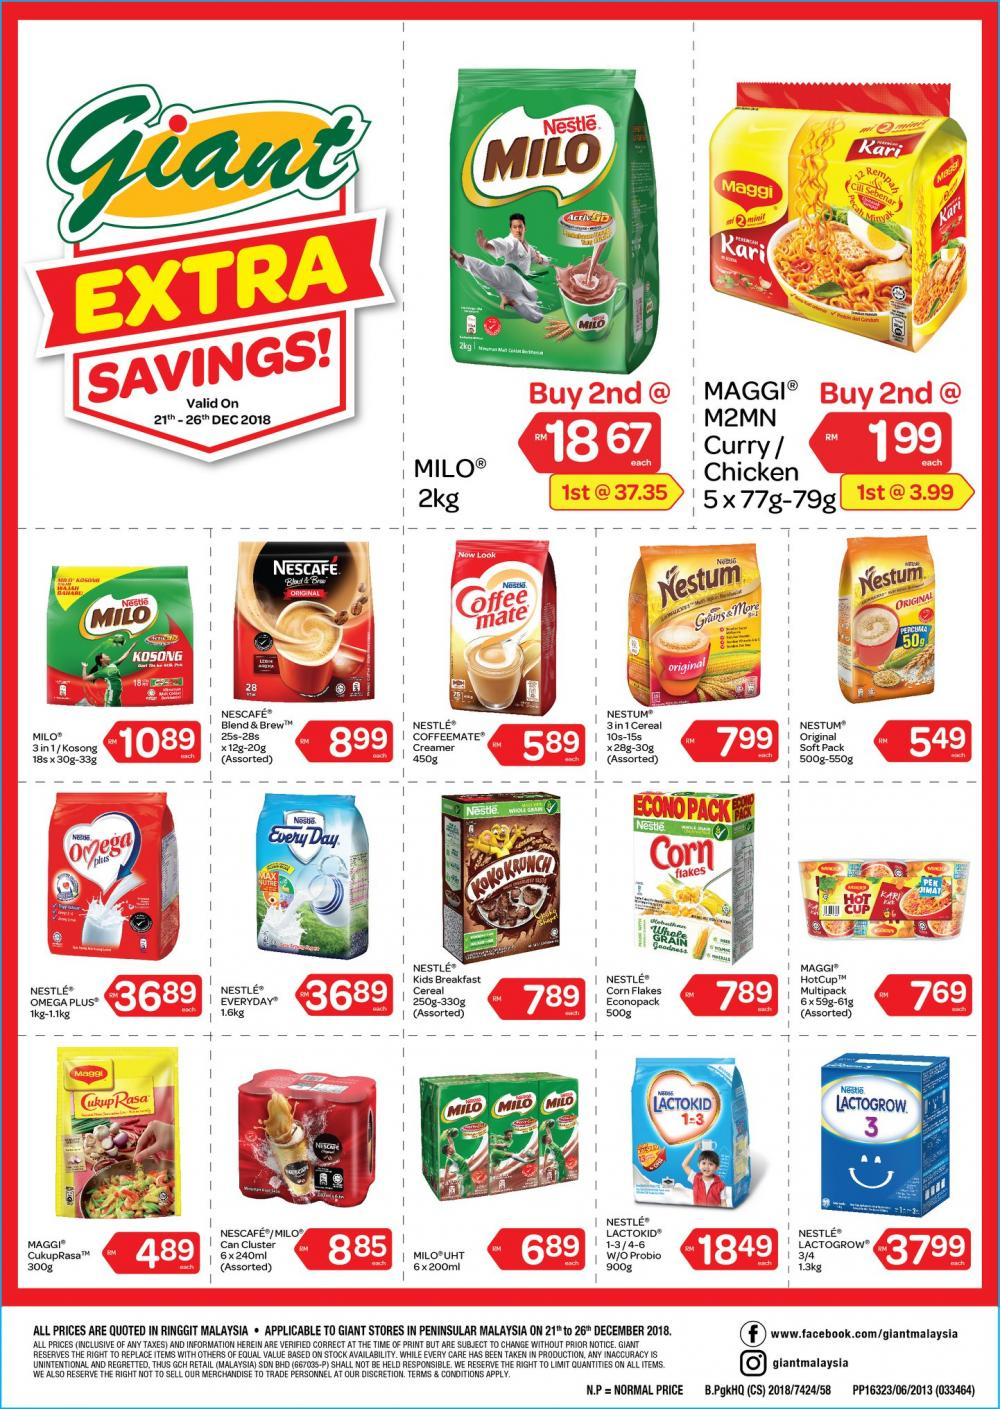 Giant Nestle Promotion (21 December 2018 - 26 December 2018)